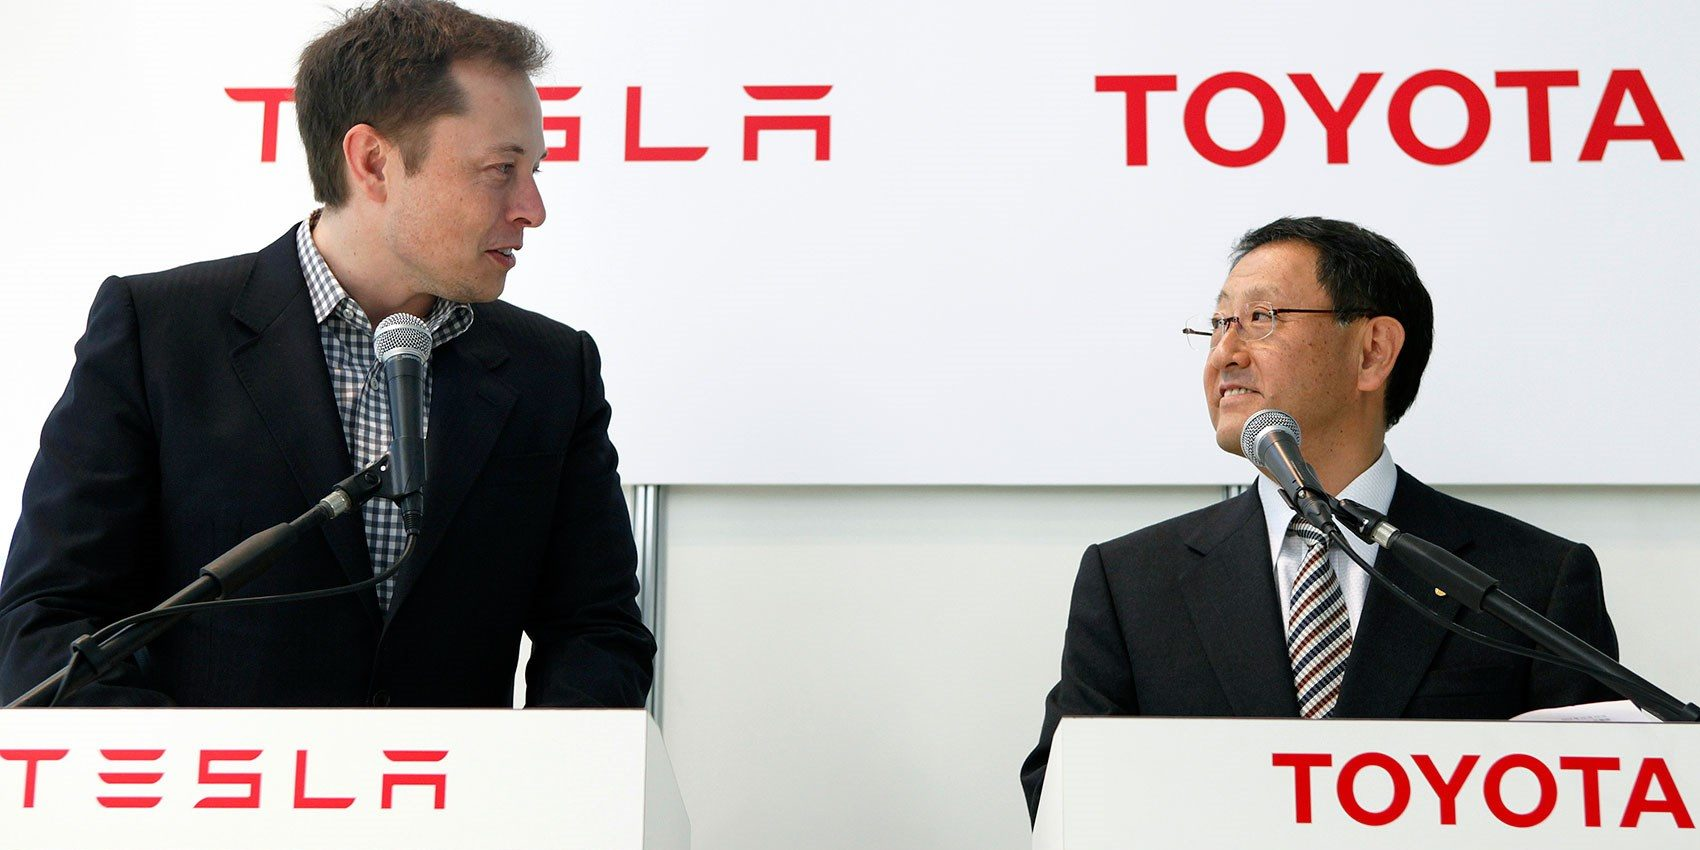 Musk and Toyoda speaking at a conference.